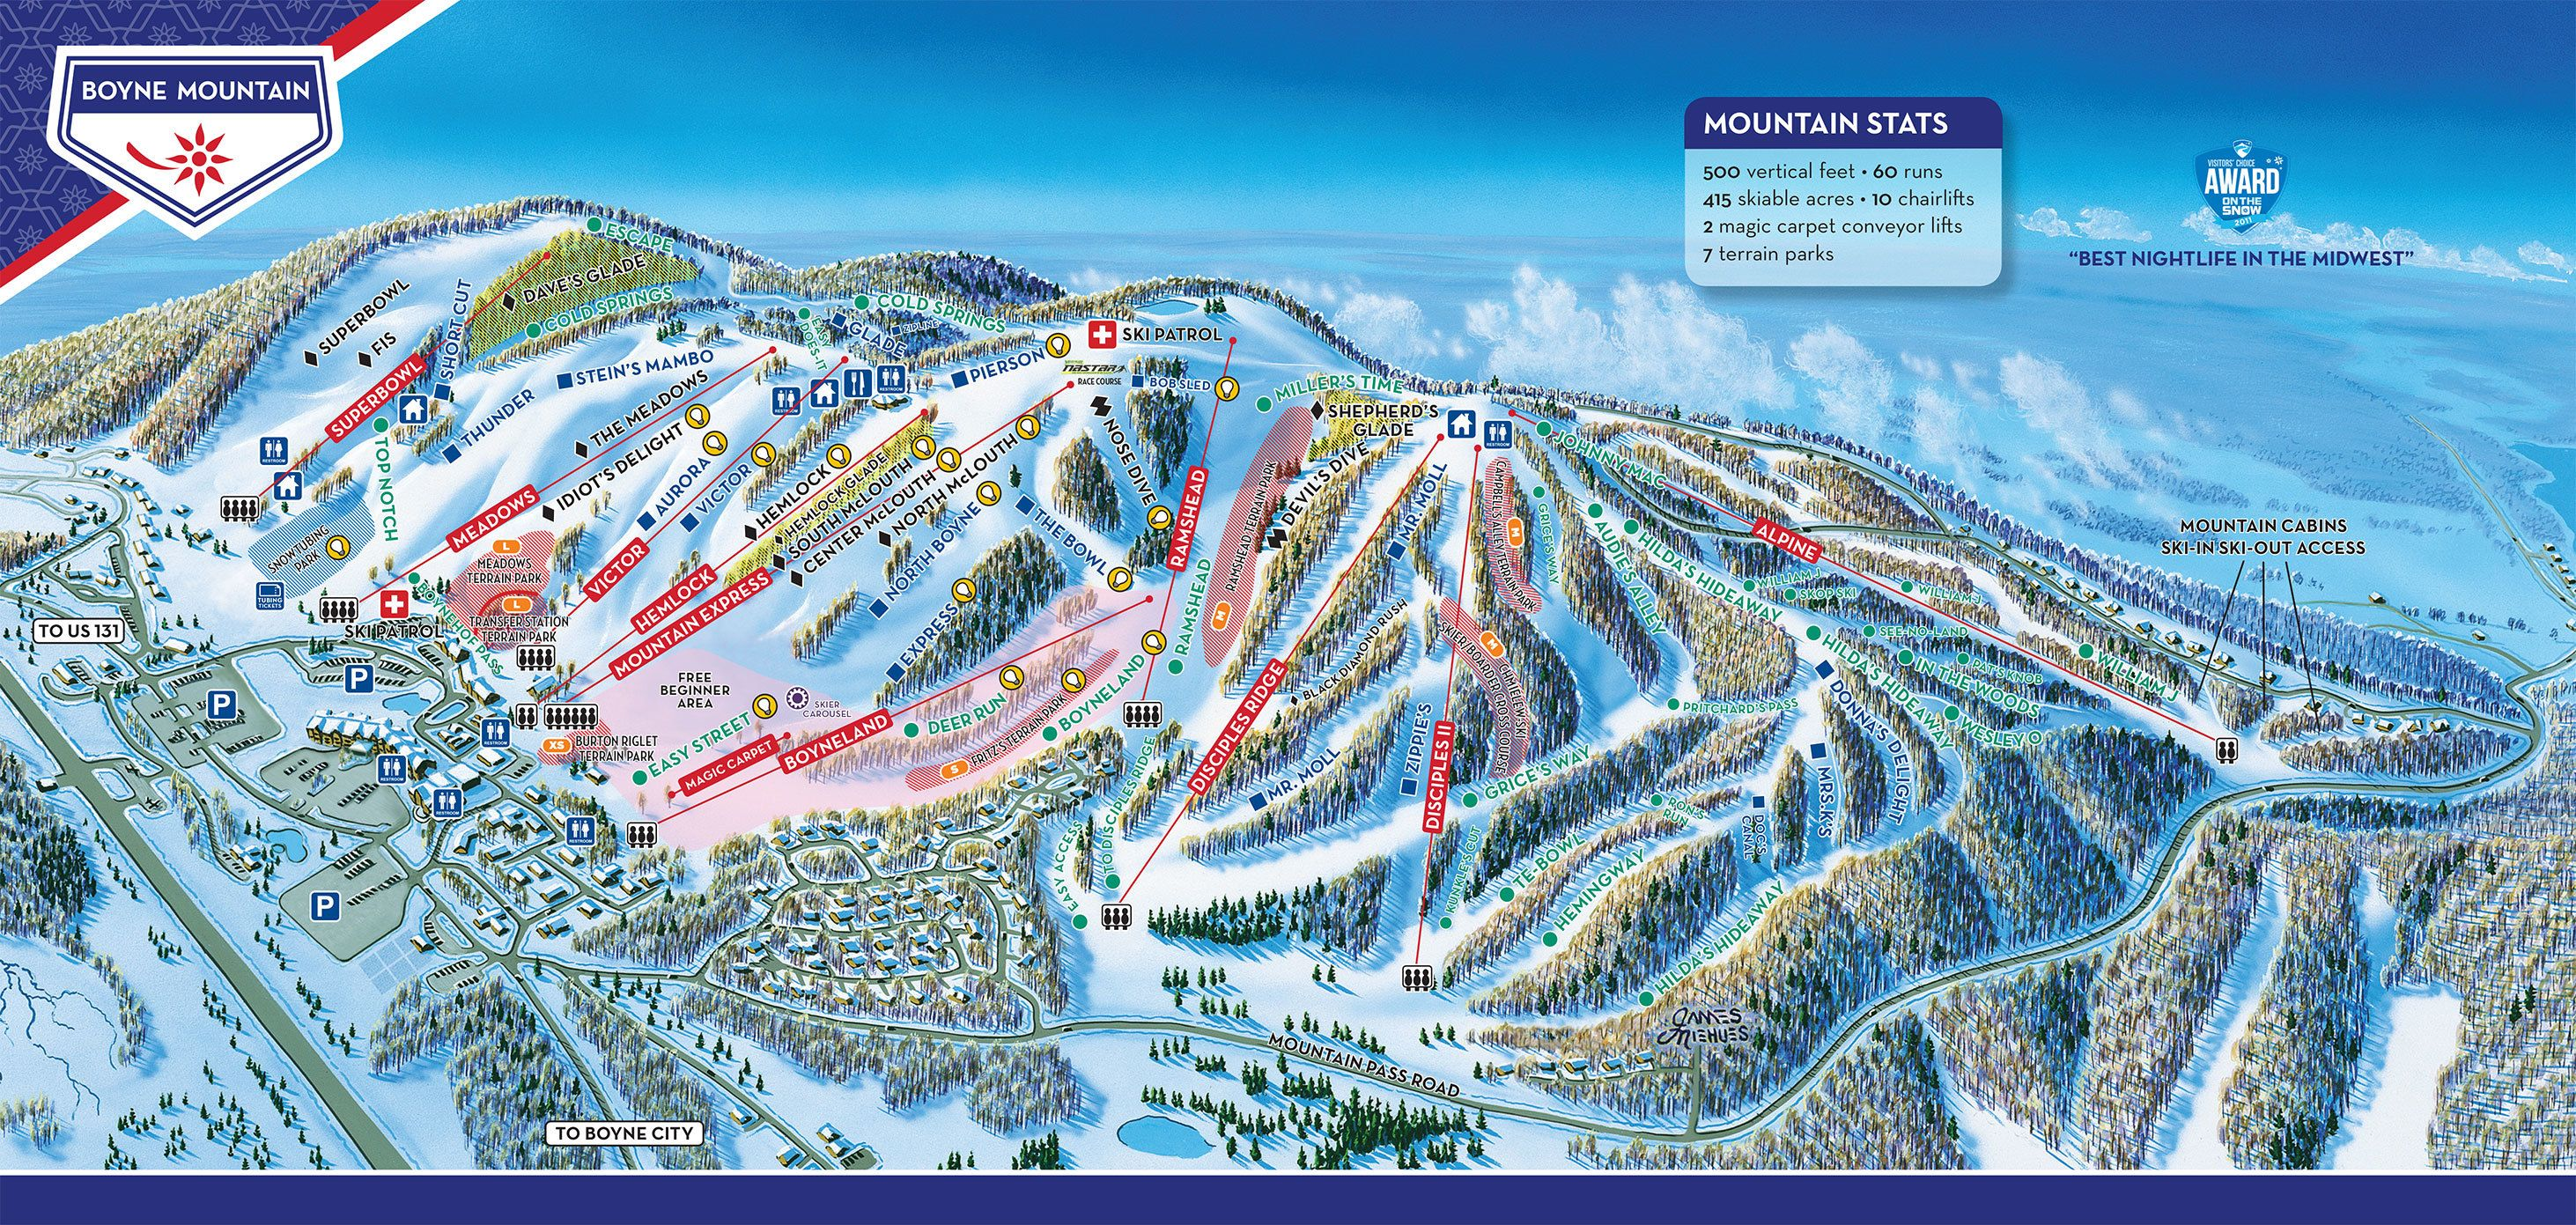 we race on super bowl/fis boyne mountain | been there, done that